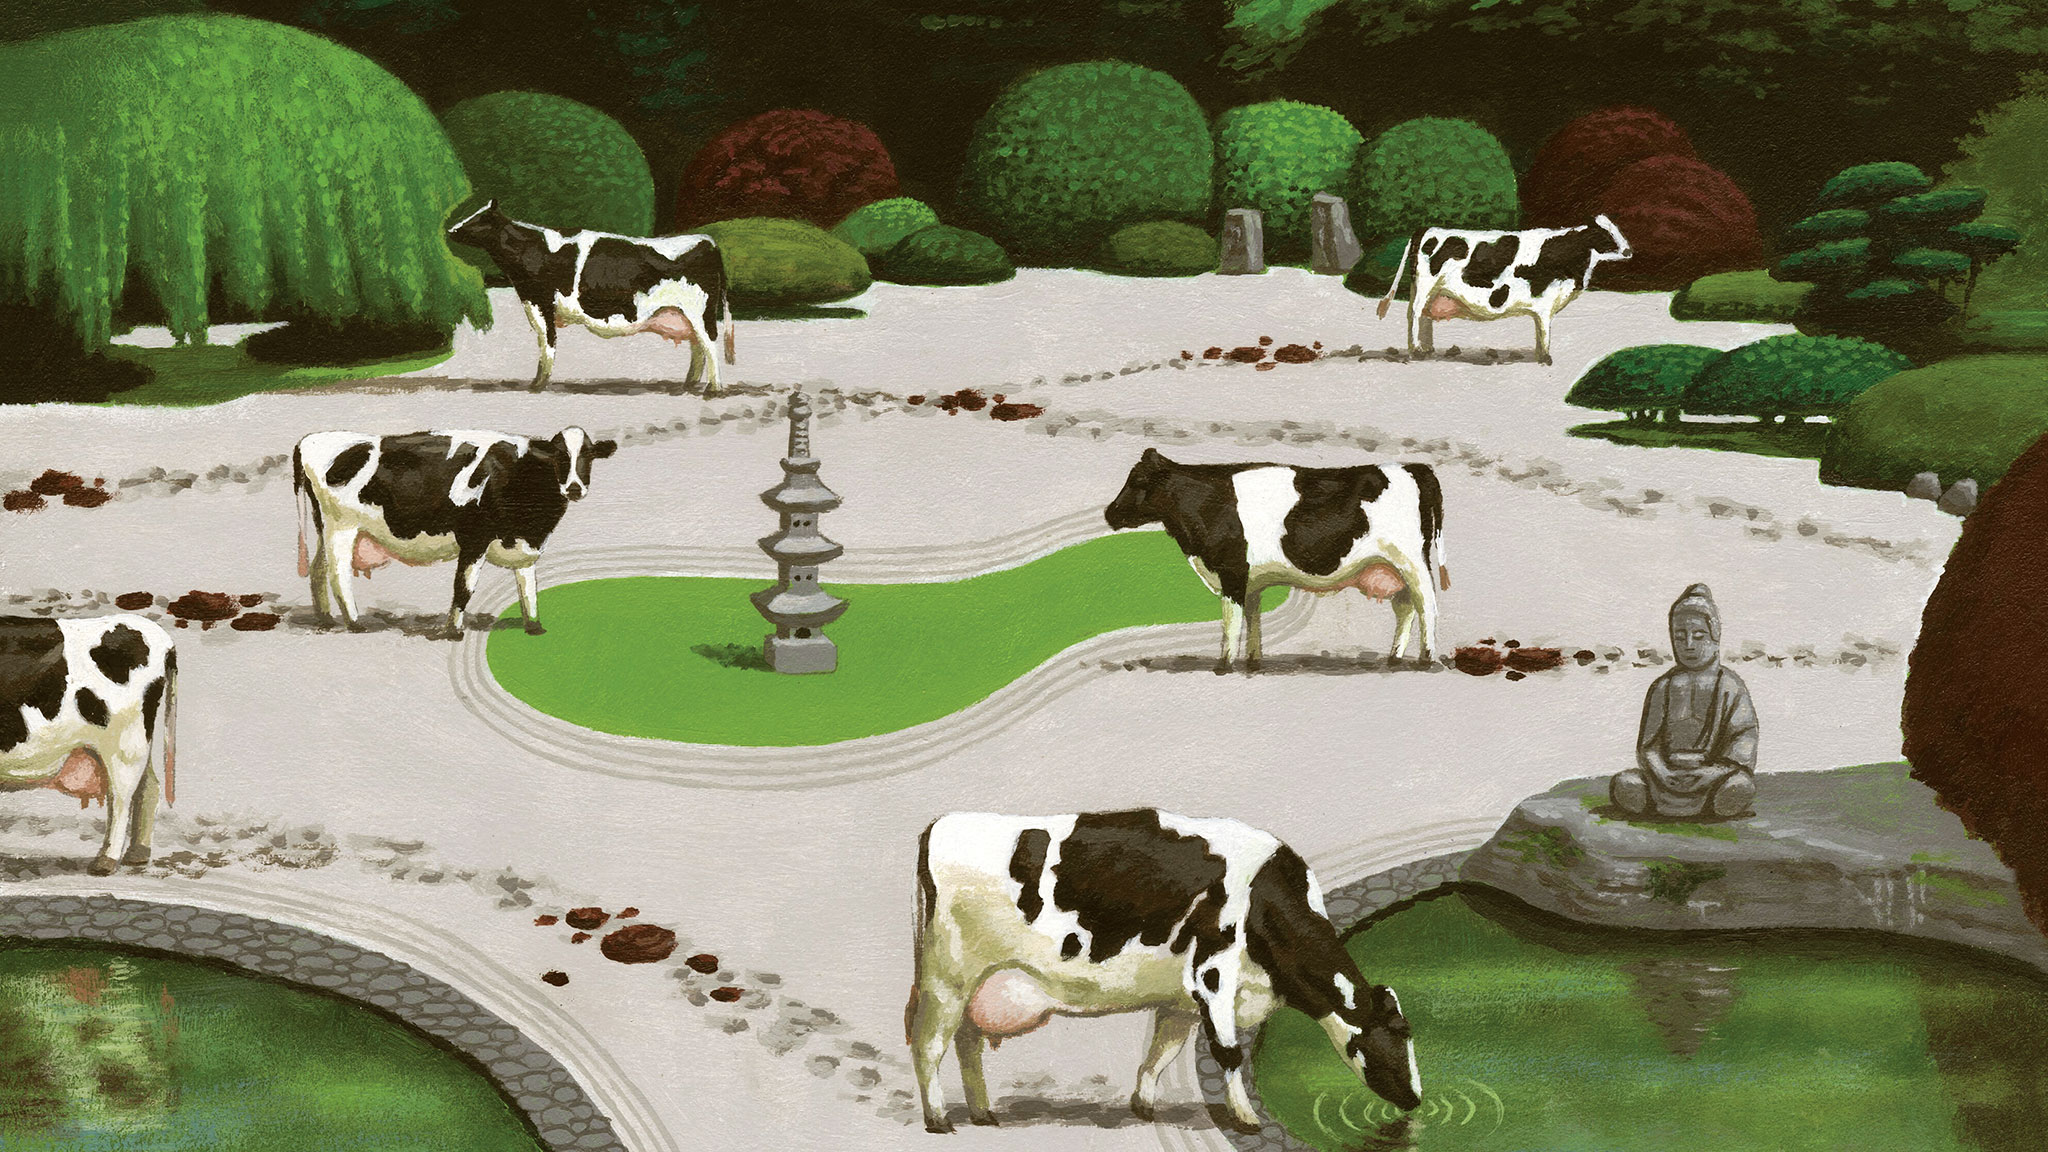 Property law: stray cows have ruined my garden  Who should